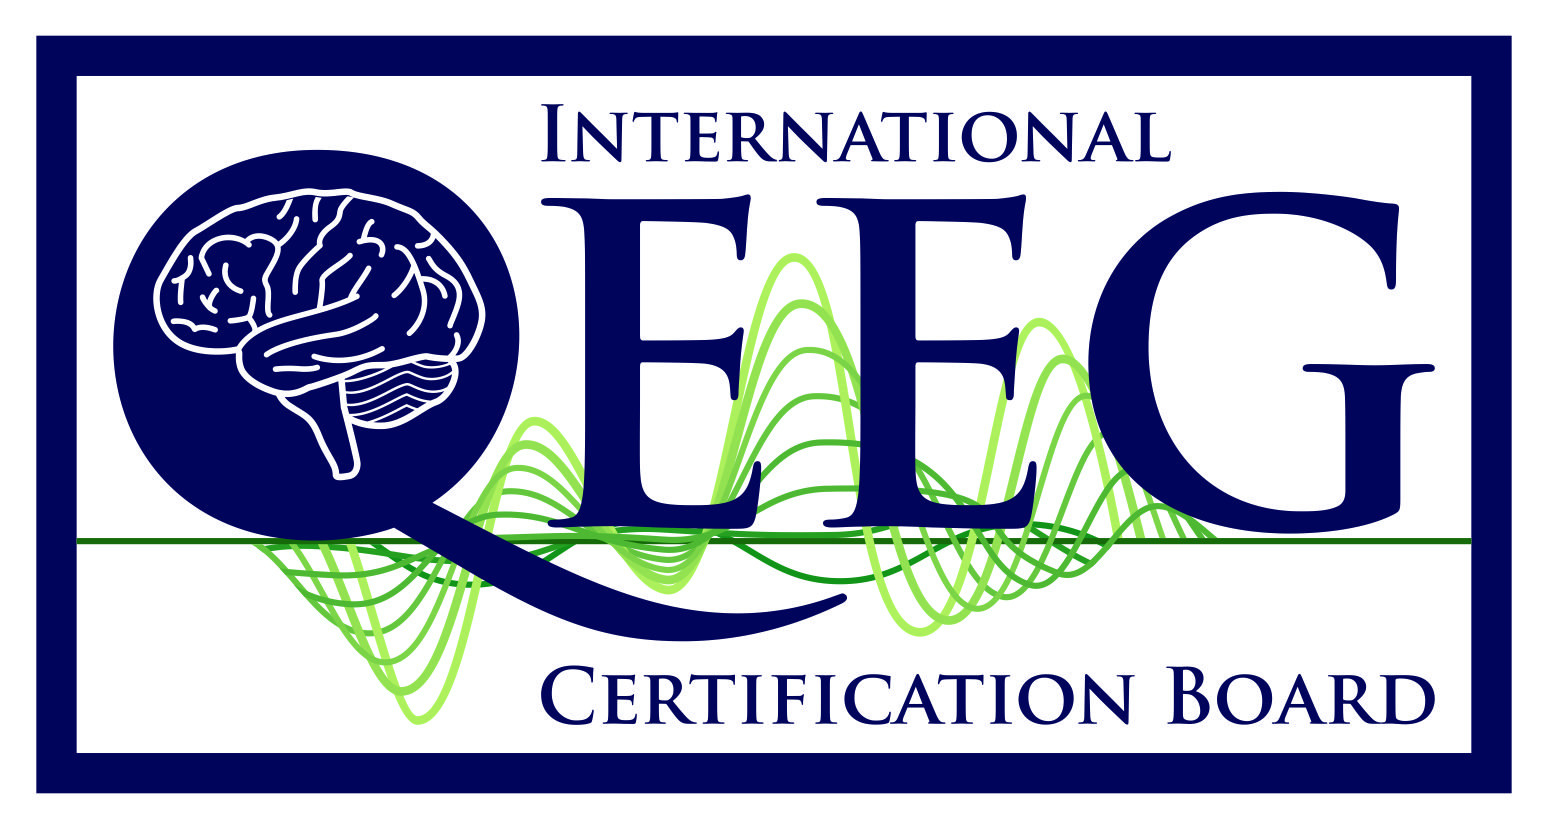 QEEG Certification Board